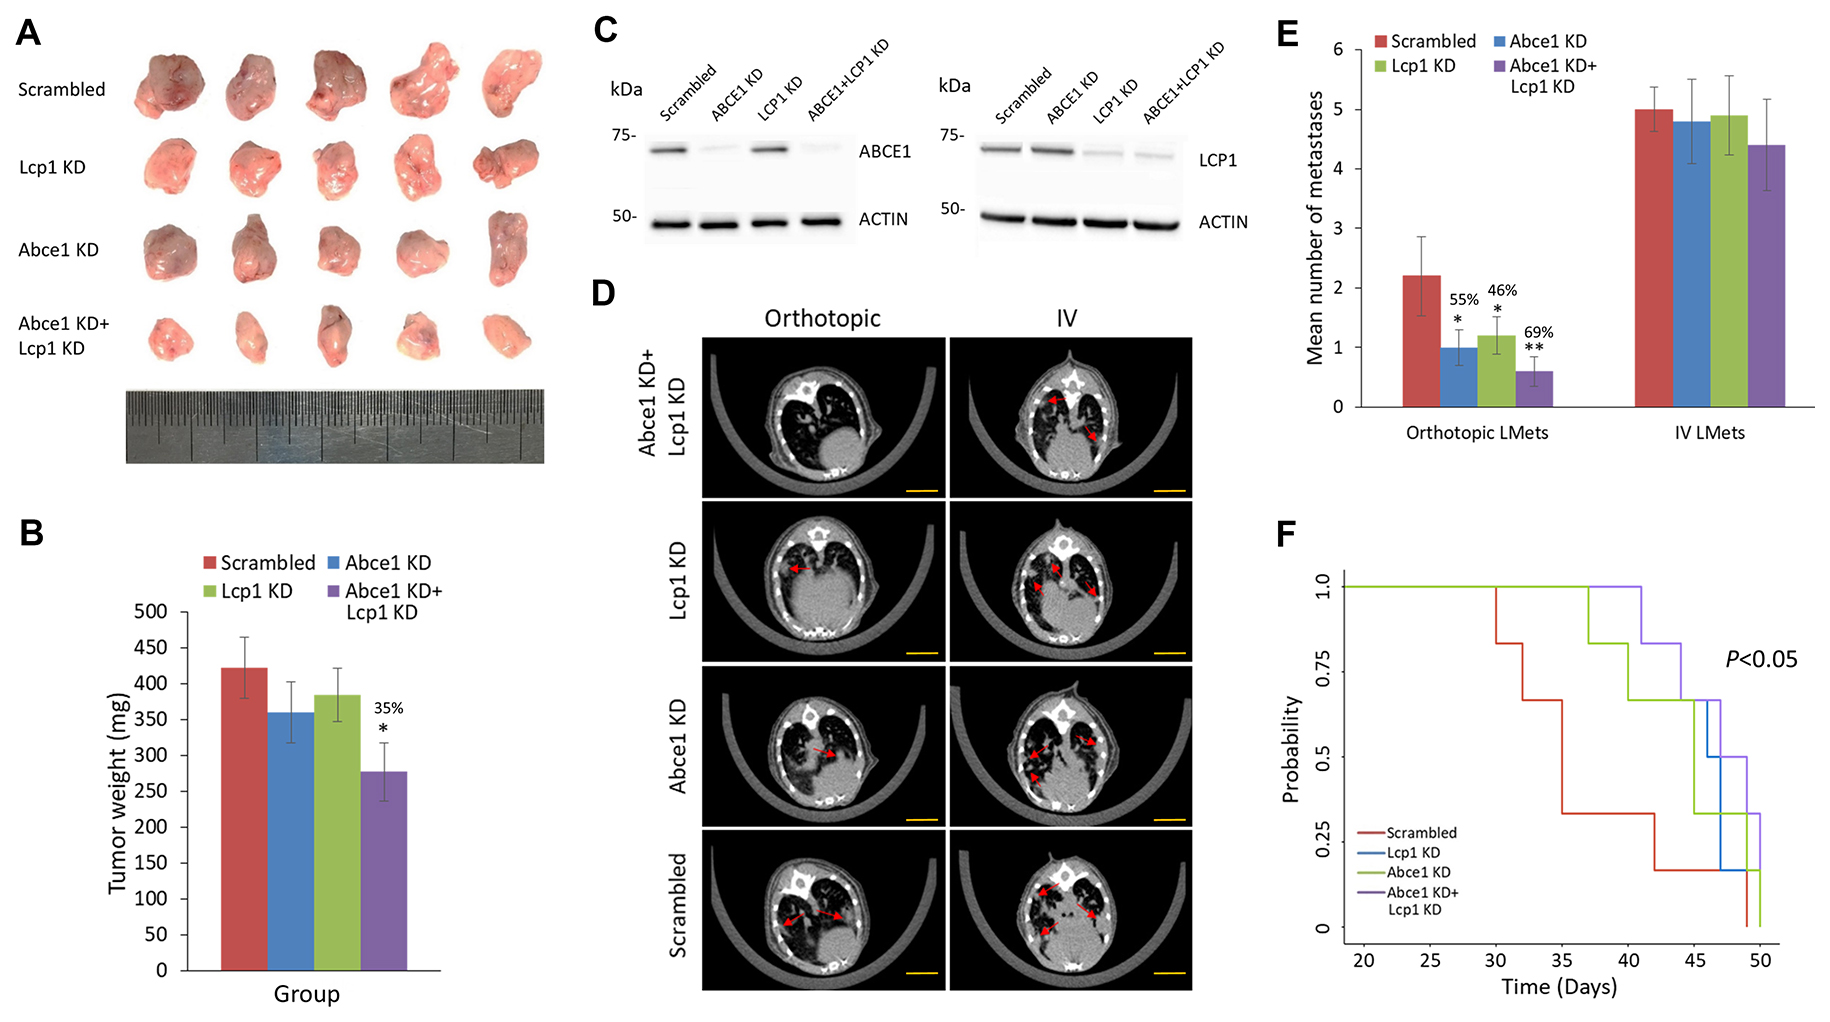 Reduced LCP1 expression in the early stages of metastasis decreases lung metastasis formation and is correlated with lower tumor grade and preferable intrinsic tumor subtype.